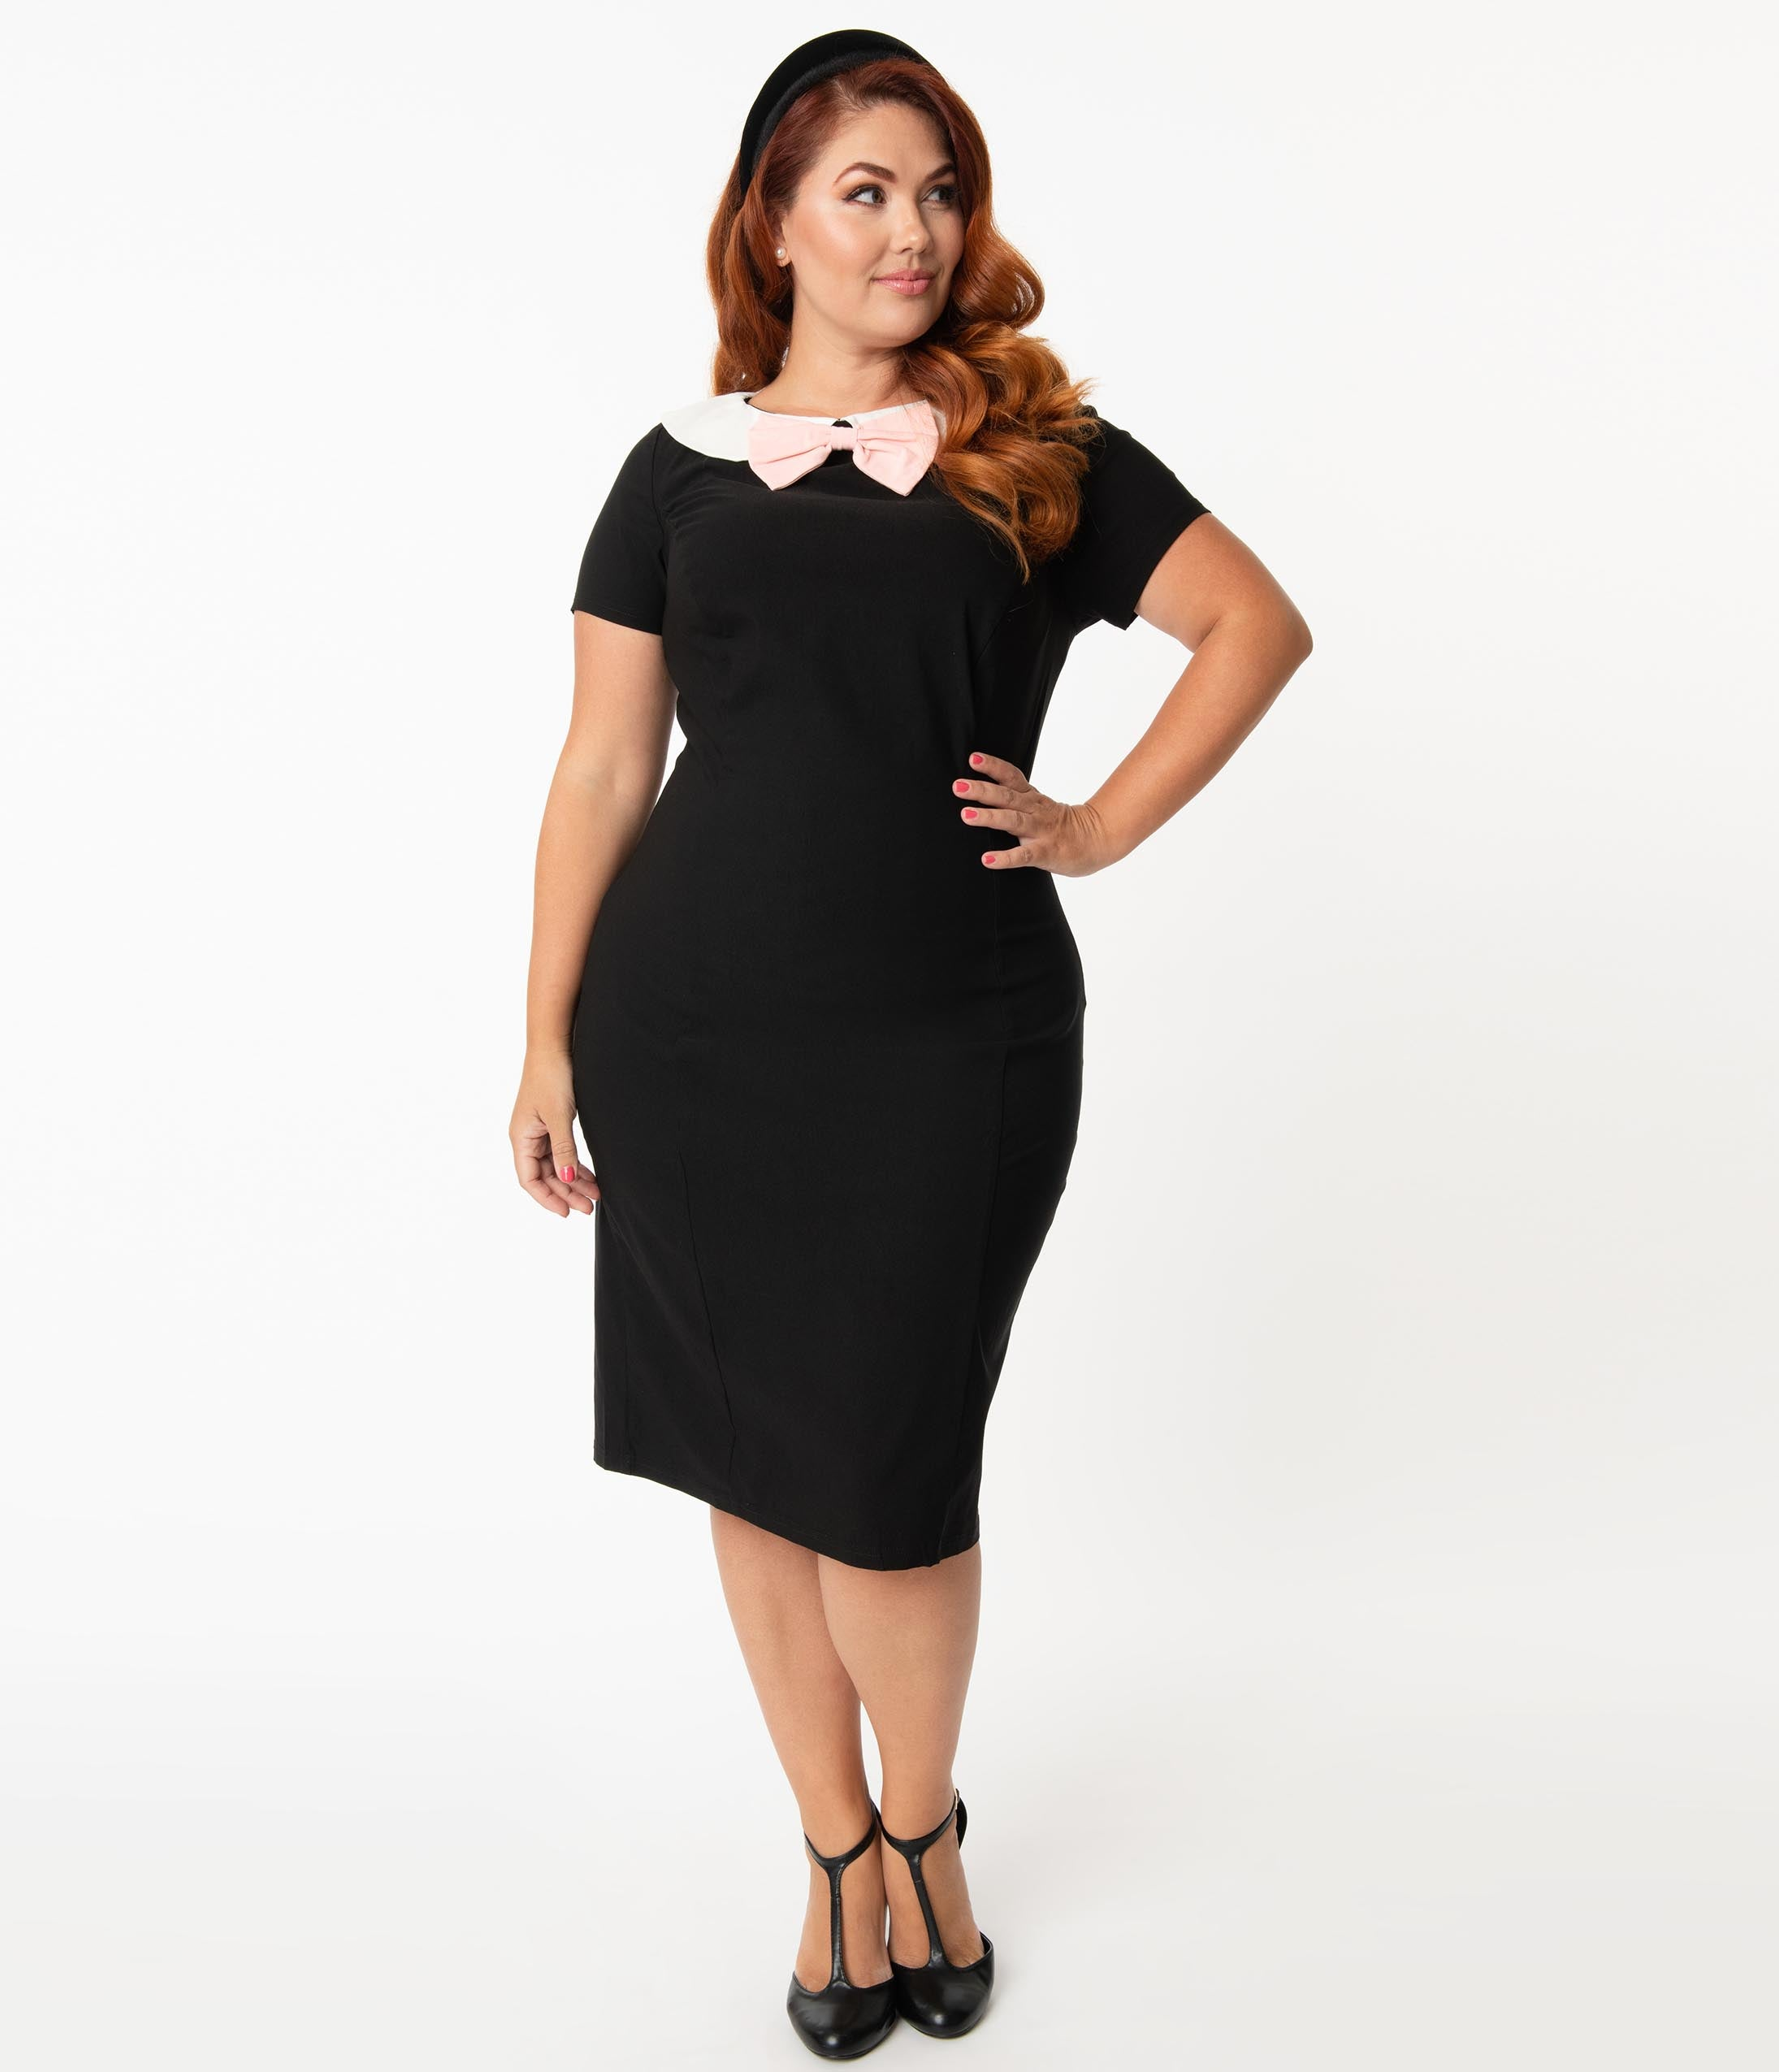 1950s Plus Size Fashion & Clothing History Unique Vintage Plus Size 1960S Black  White Collar Plaza Wiggle Dress $58.00 AT vintagedancer.com